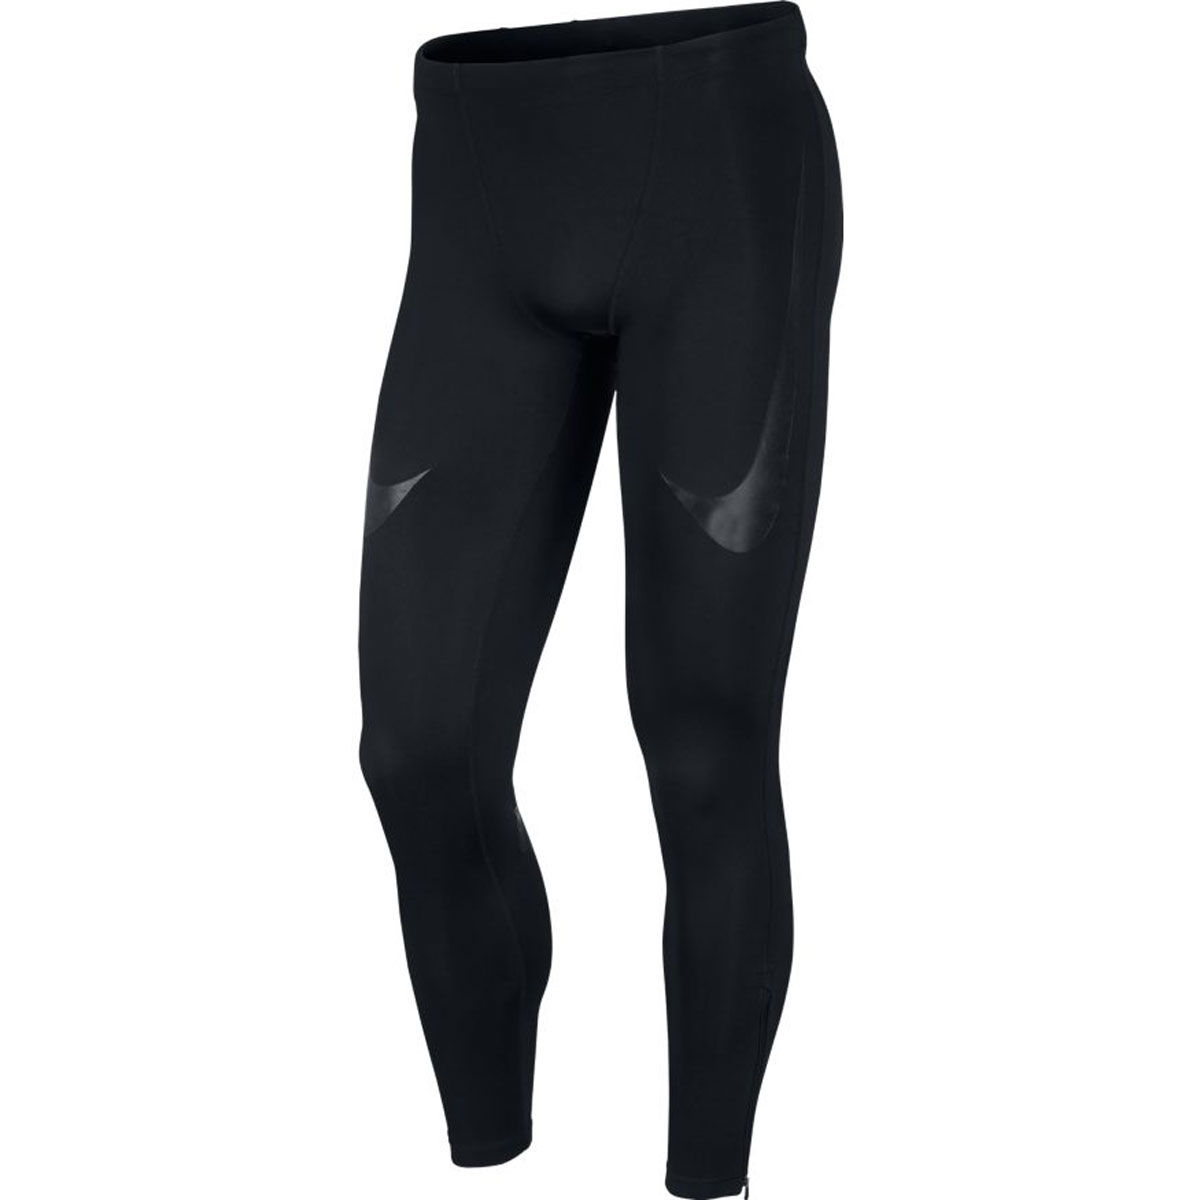 Nike Mens Graphic Running Tights